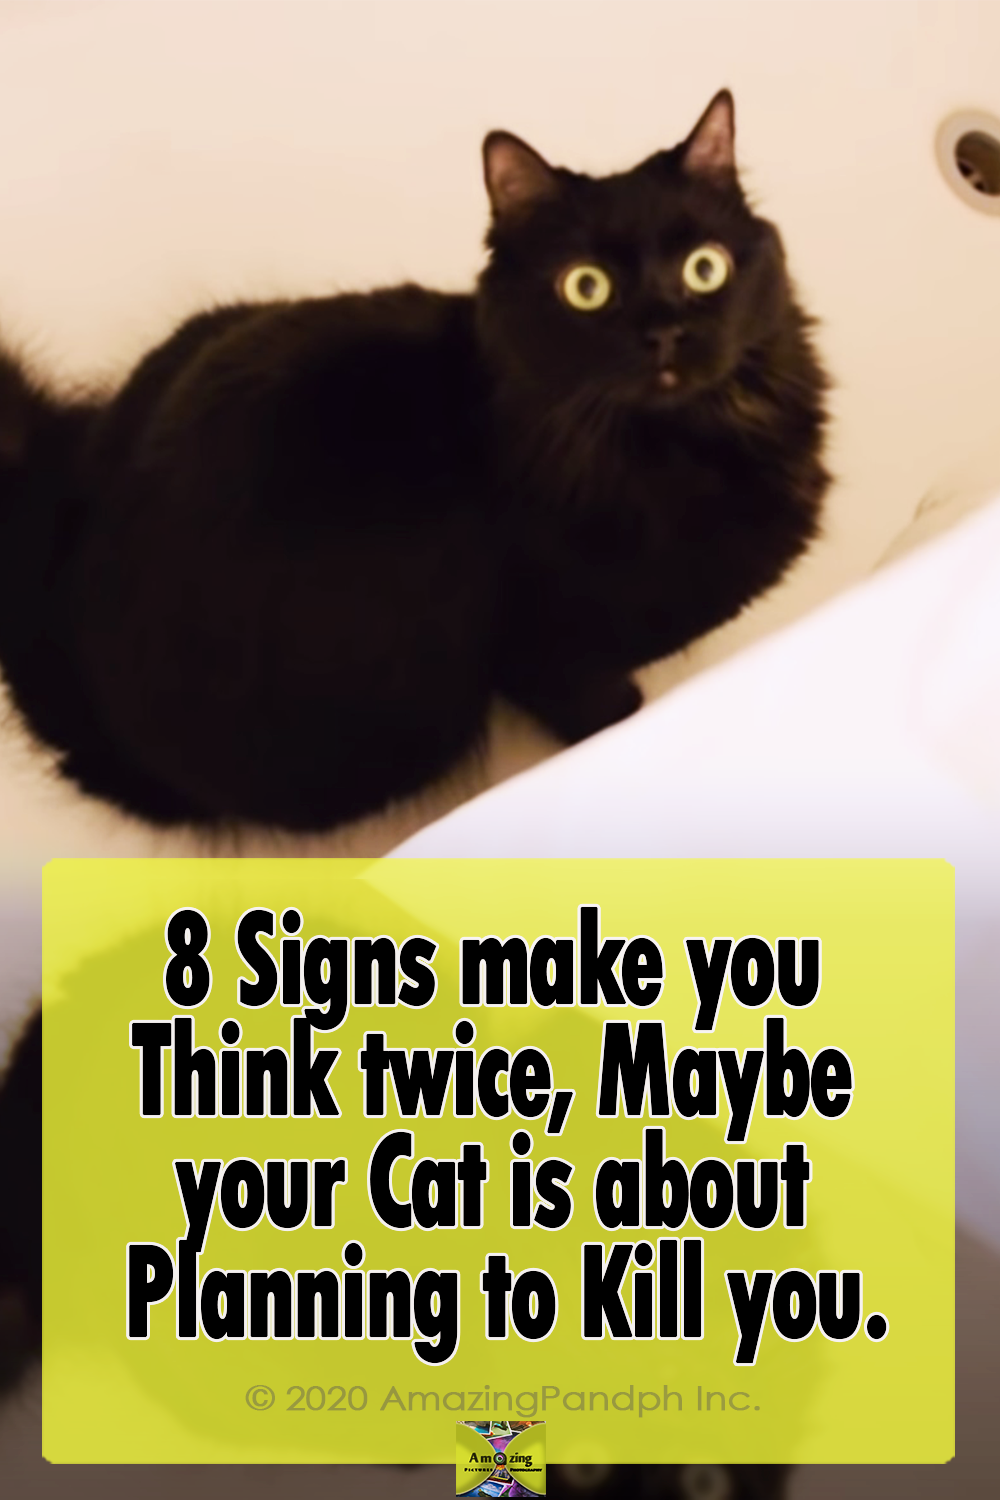 cats, signs, adorable, funny, animals, pets, records, dangerous,